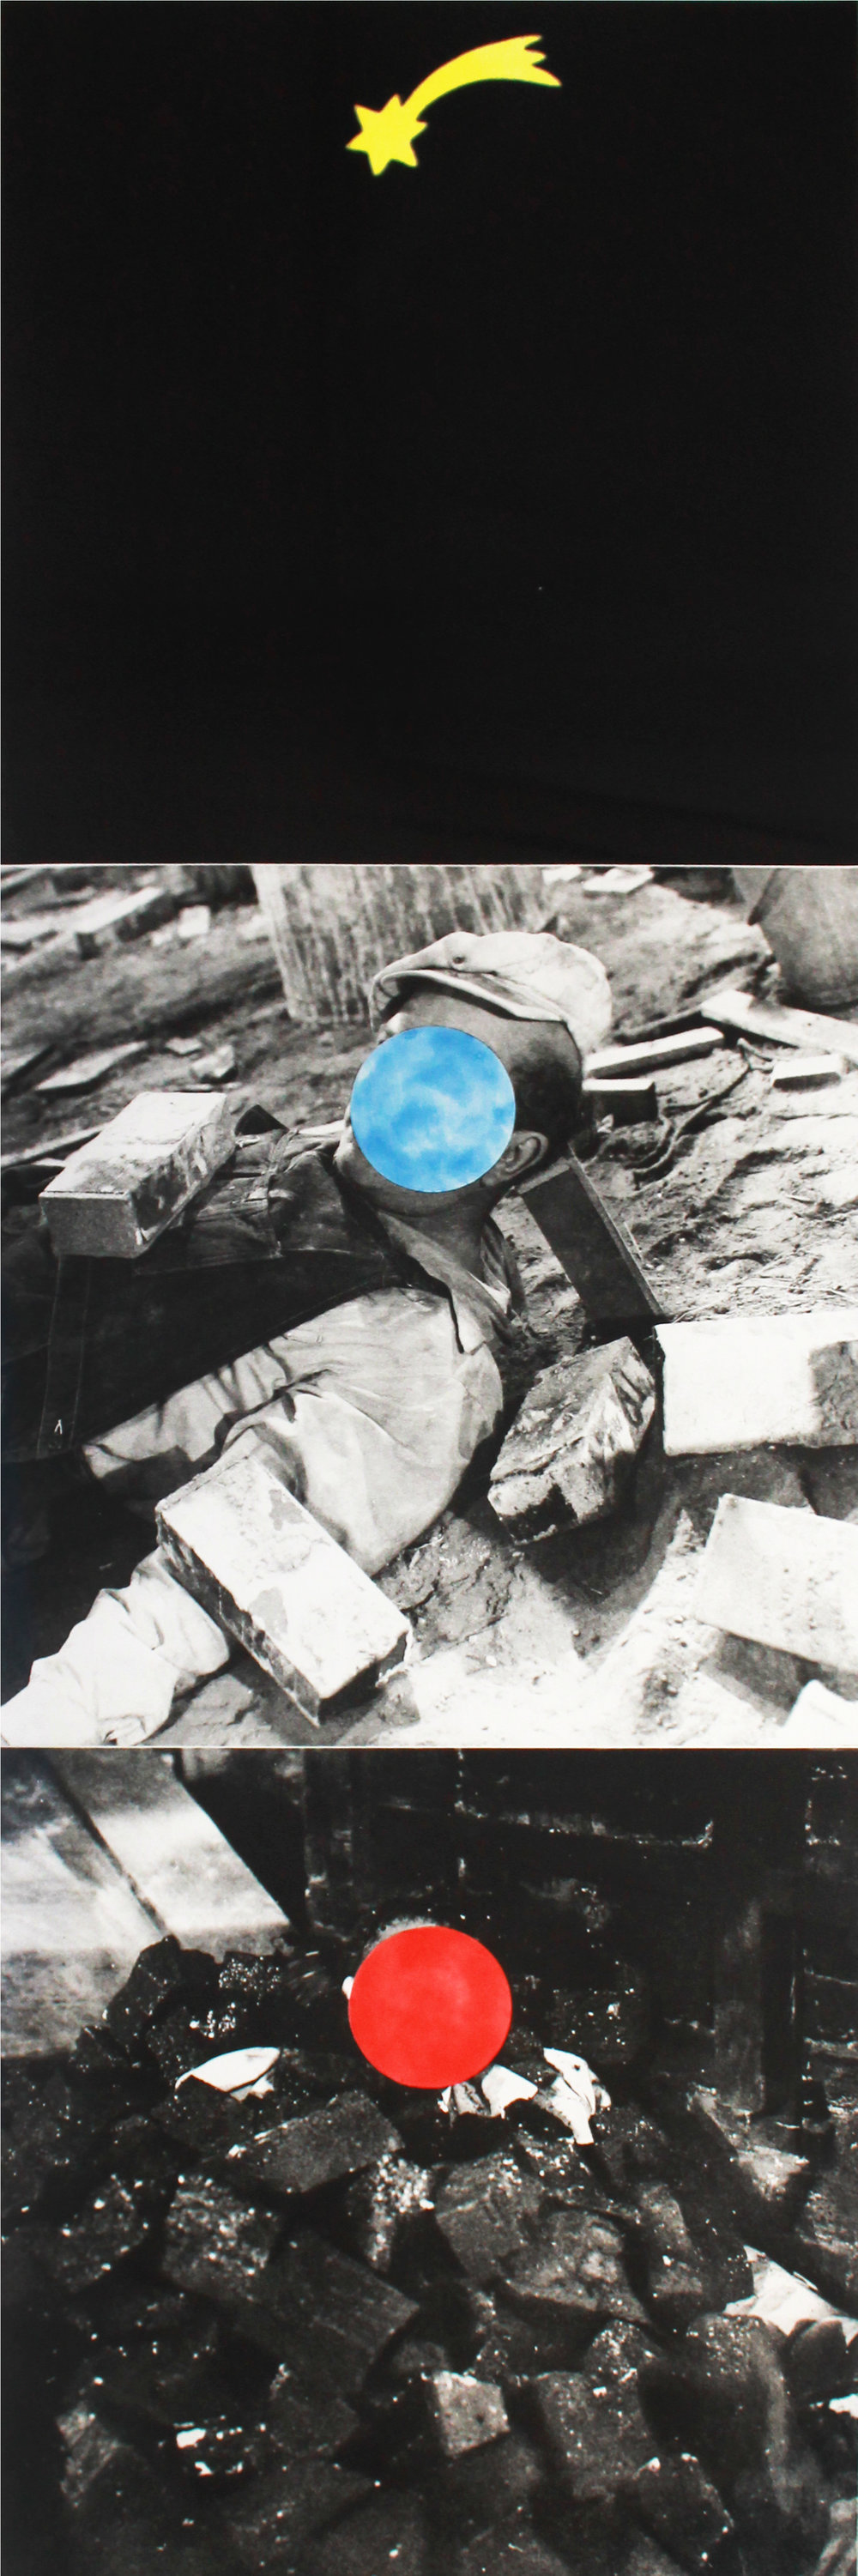 John Baldessari   Falling Star , 1989-90 Photogravure with color acquaint From the numbered edition of 45 Signed and numbered in pencil on recto Image: 62 x 20.5 inches; Sheet: 64.5 x 23 inches; Framed: 68 x 26 inches Estimate: $6,000/$7,000